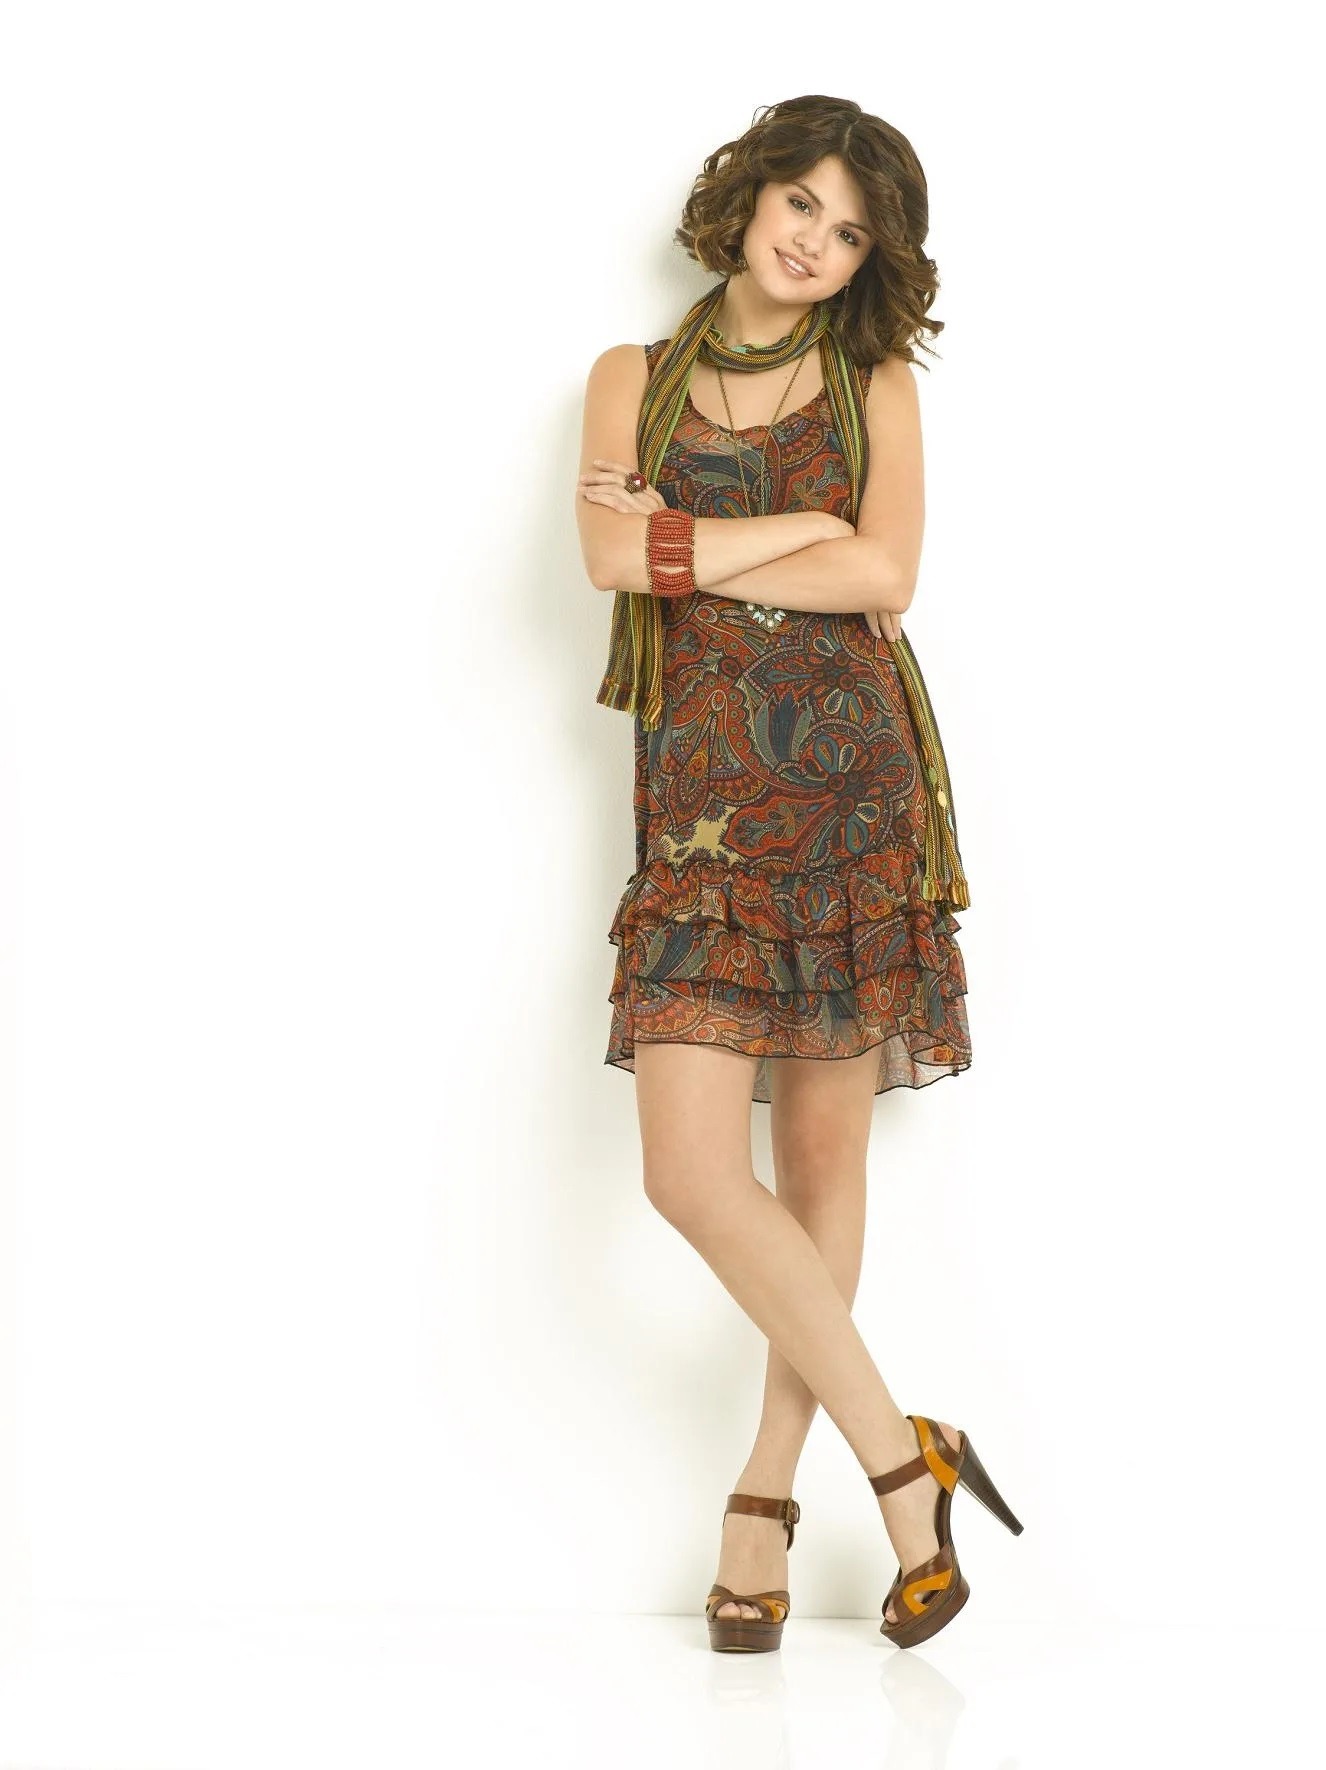 Selenag iprime 06  sc 1 st  Wizards of Waverly Place Wiki - Fandom & Alex Russou0027s Style | Wizards of Waverly Place Wiki | FANDOM powered ...